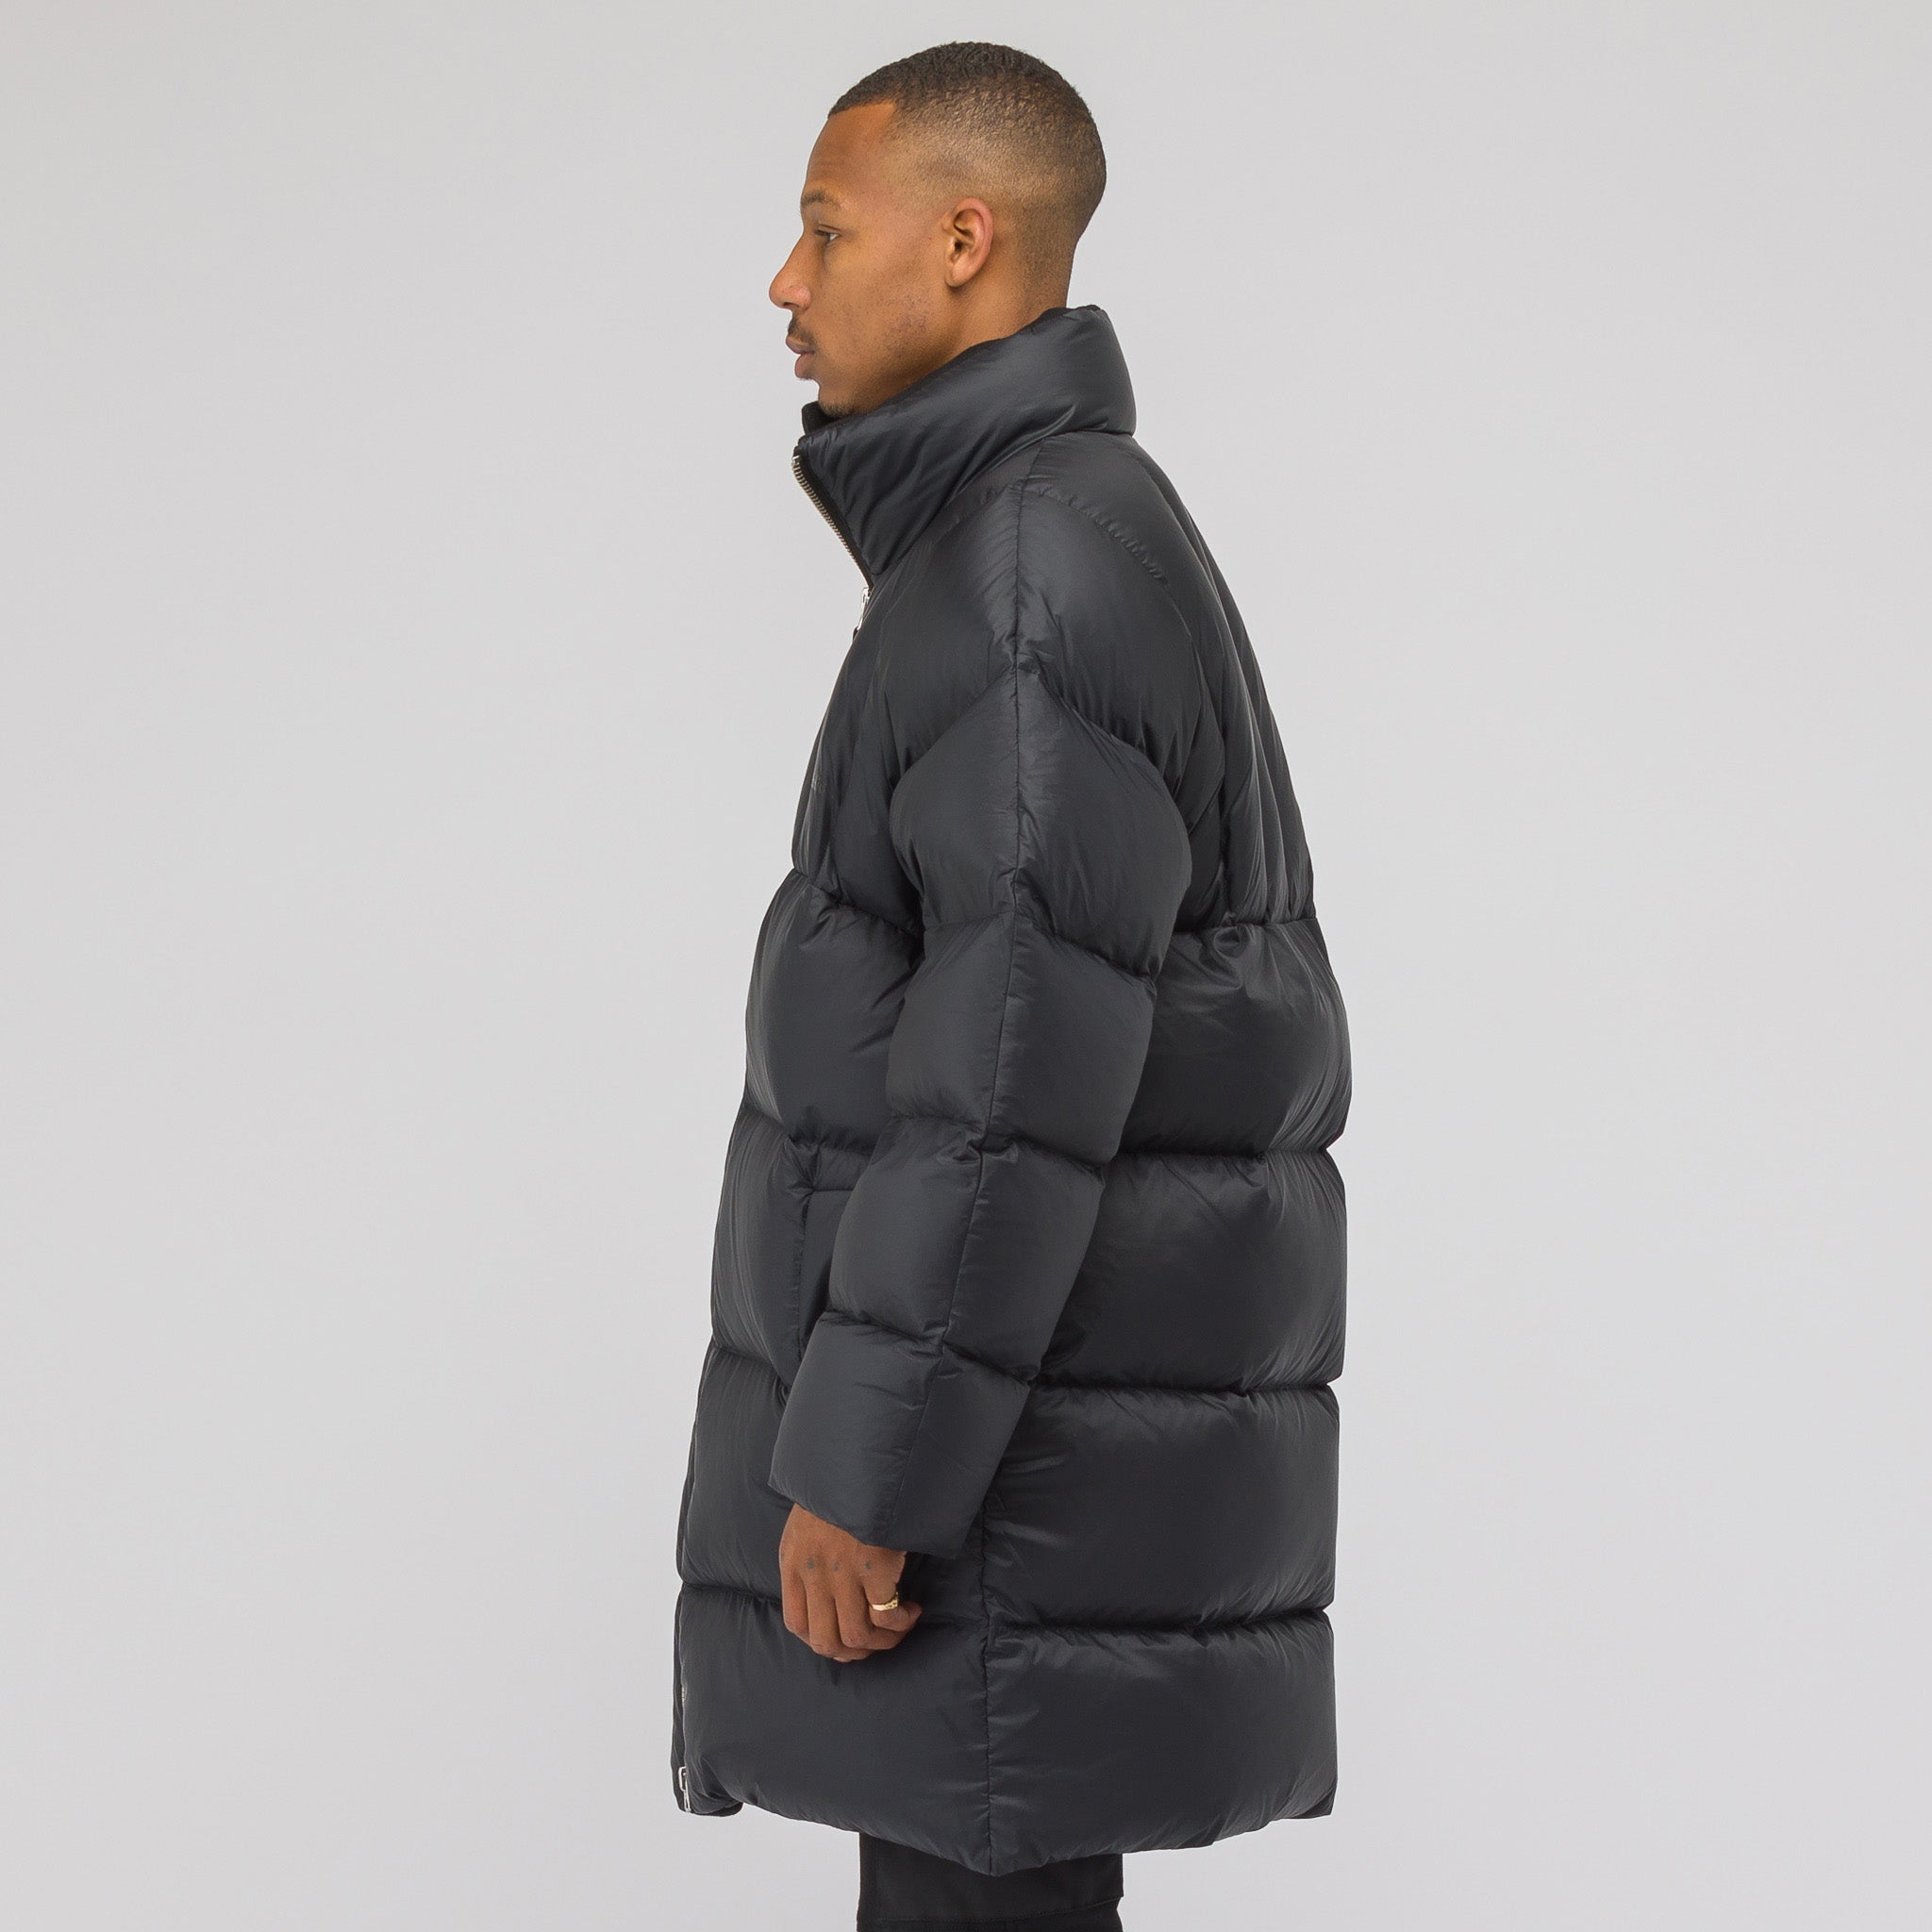 Puffy Jacket in Black